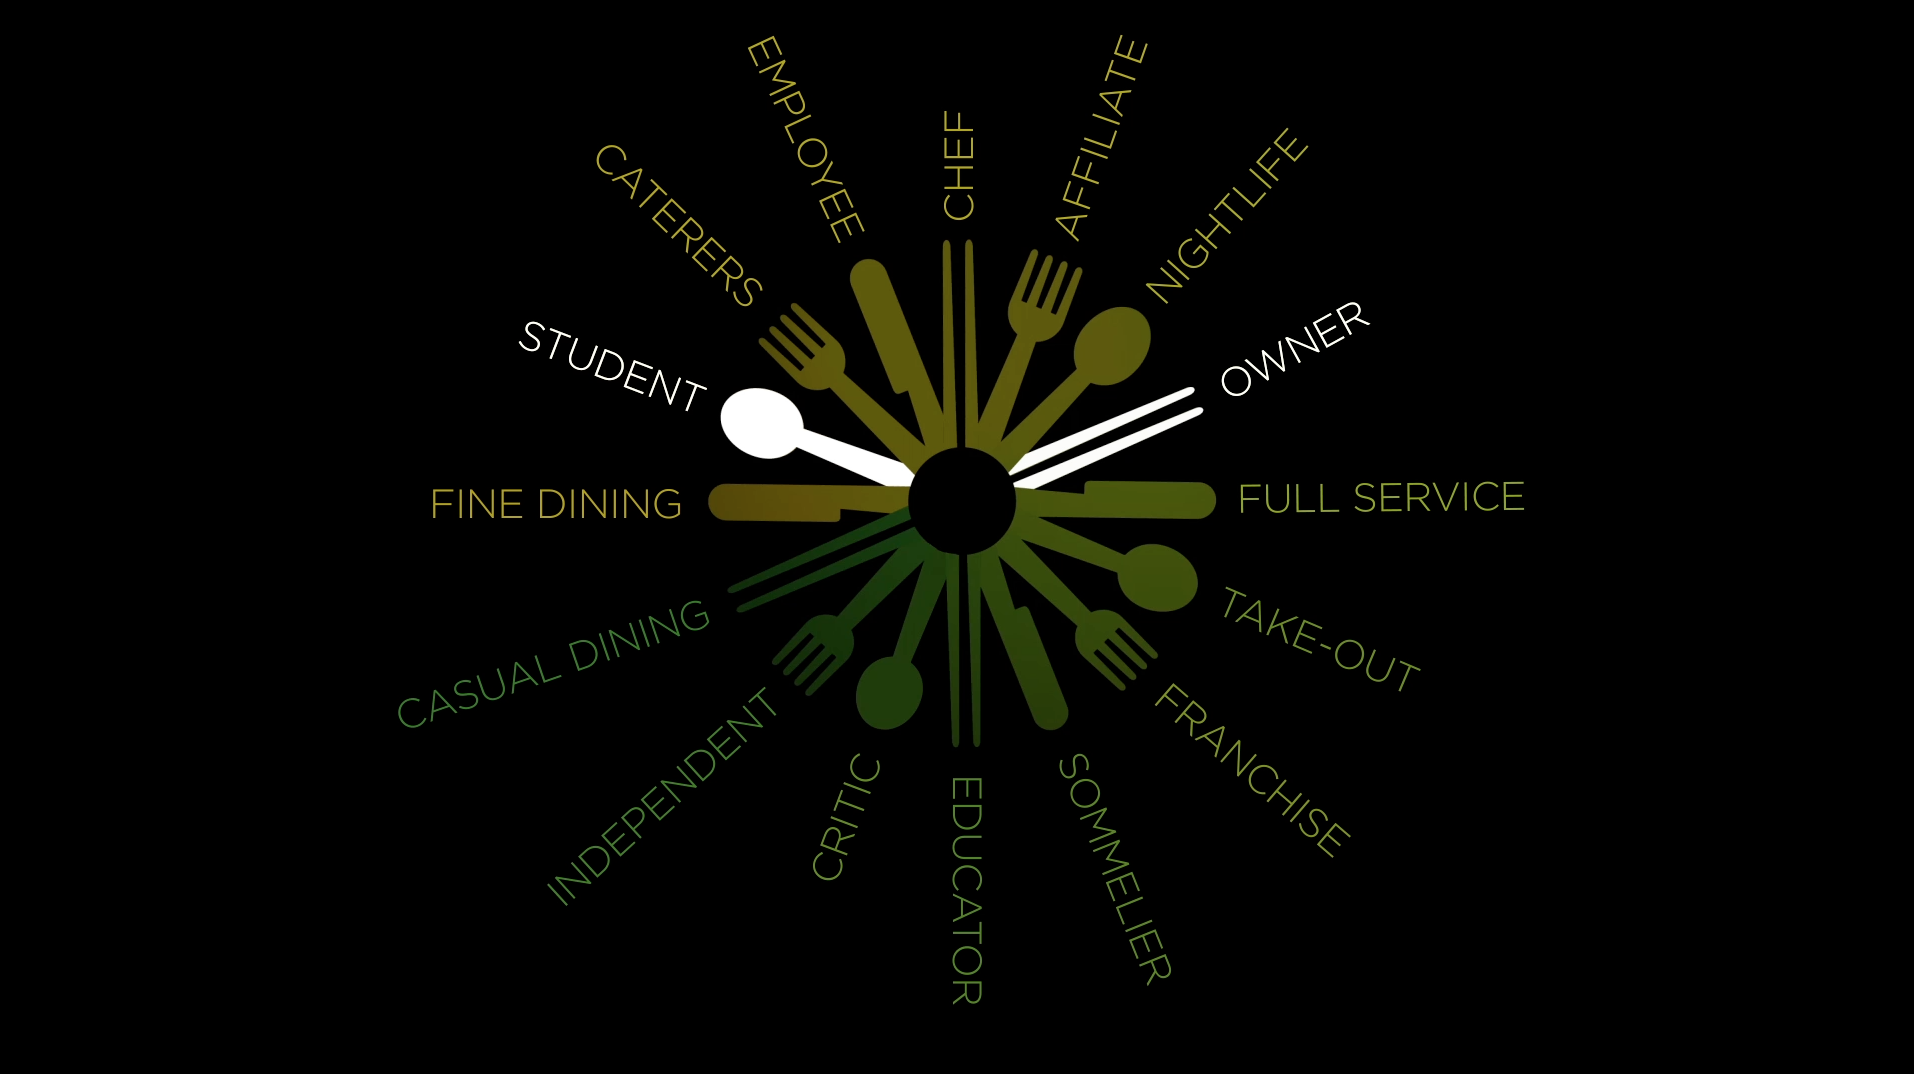 Project image 8 for Logo Animation, New York State Restaurant Association